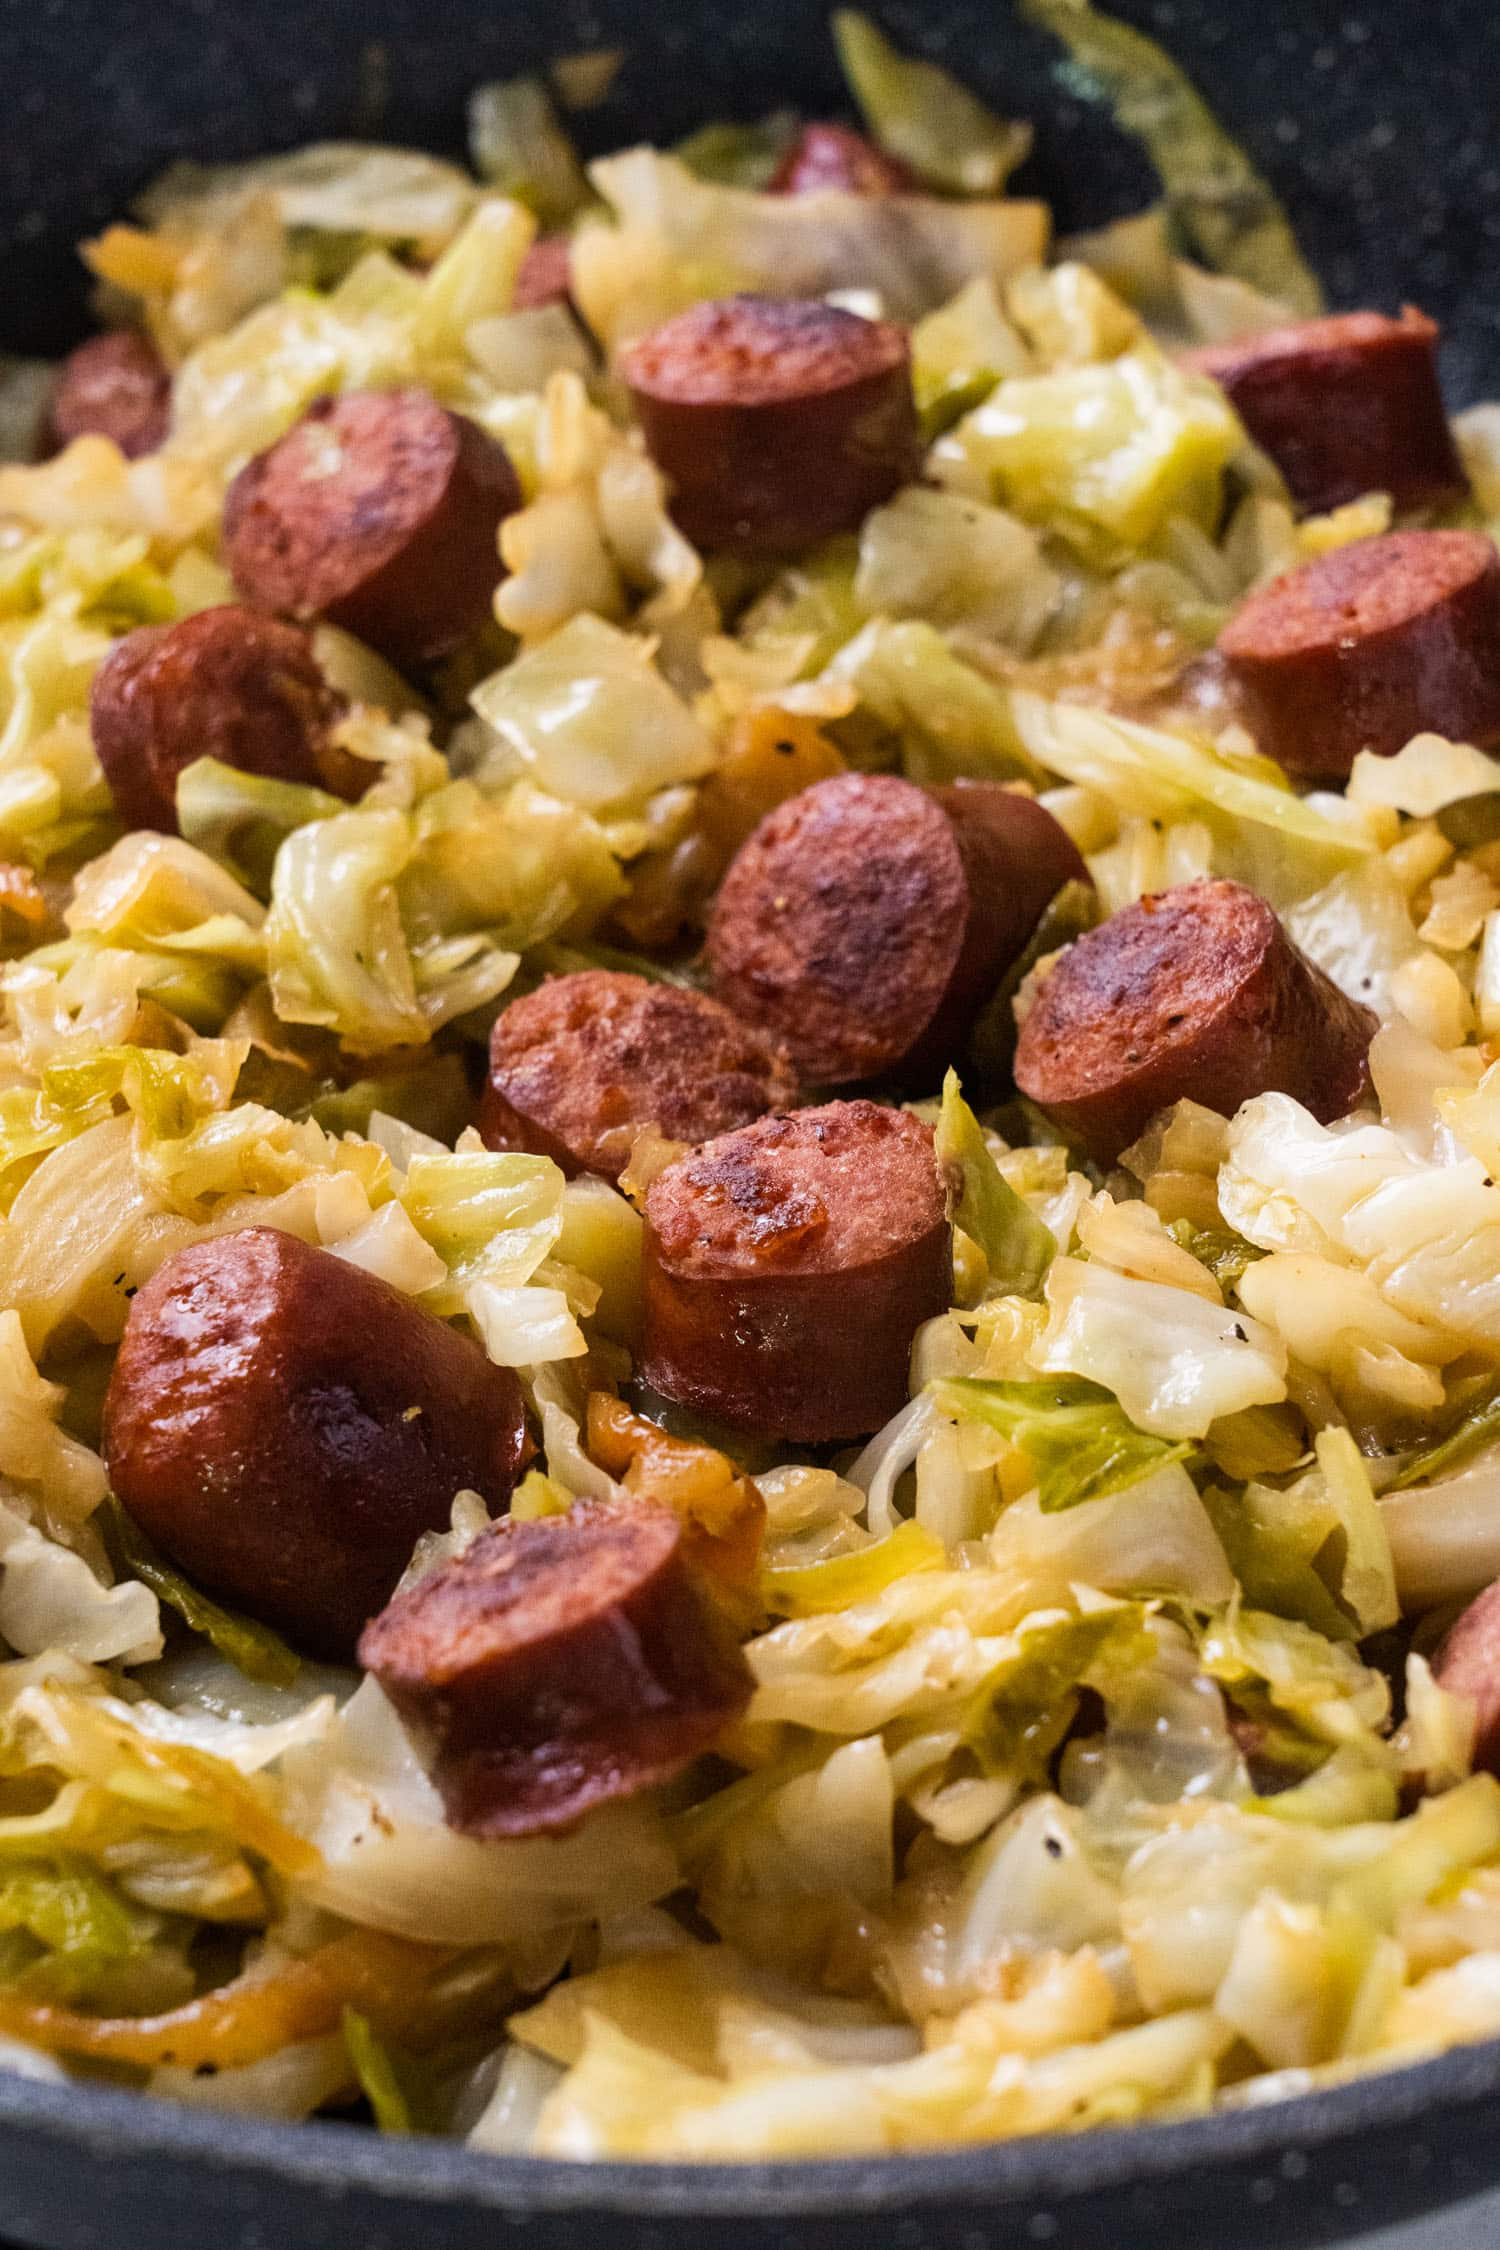 chopped up sausage with fried onions in skillet with wooden spoon